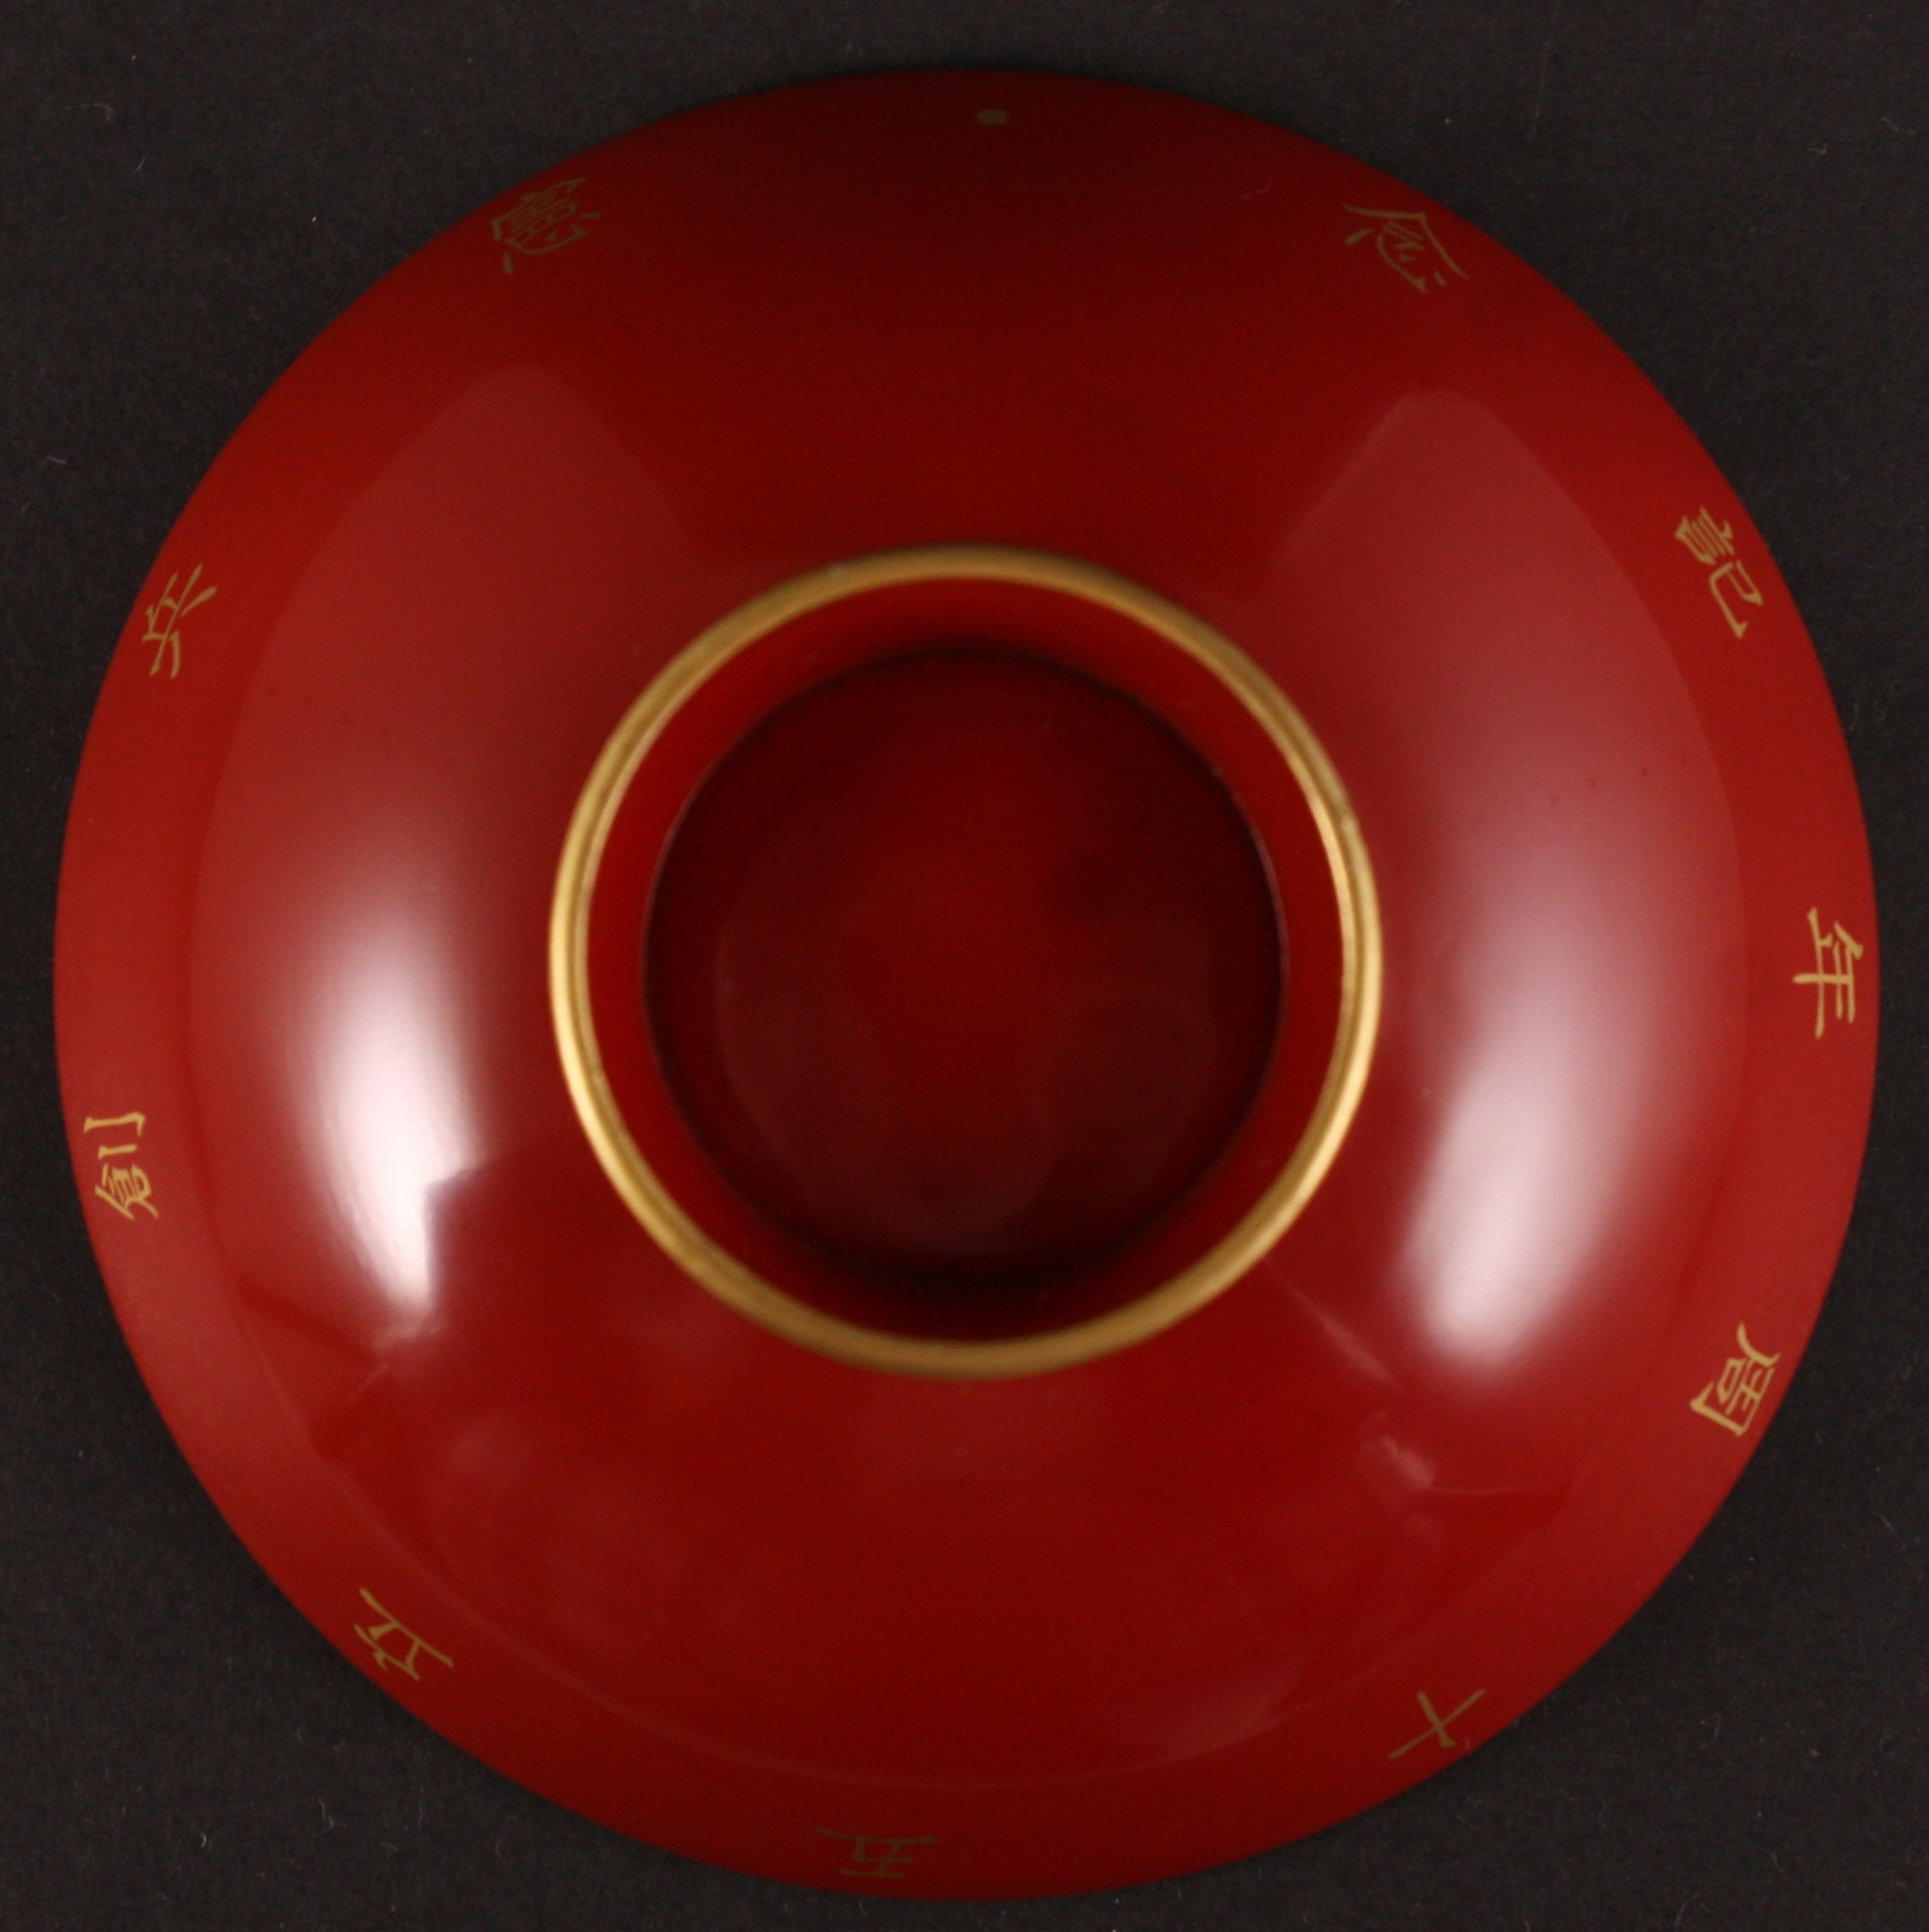 Very Rare Antique Japanese Military 1931 Kempeitai Establishment 50th Anniversary Lacquer Army Sake Cup